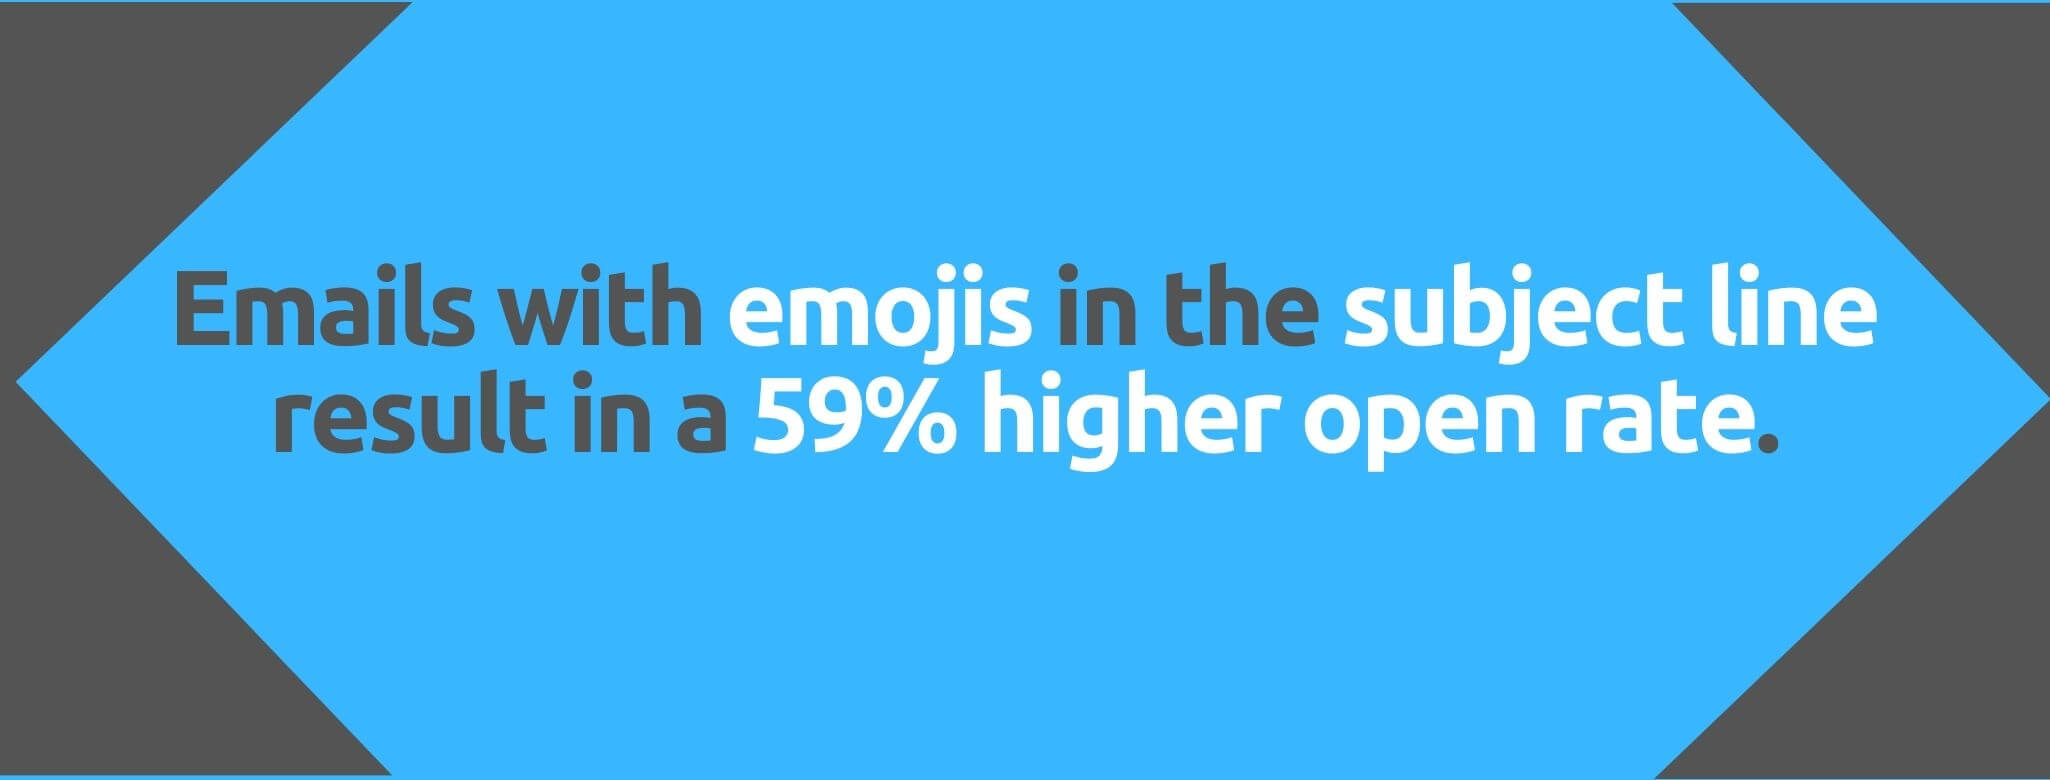 Emails with emojis in the subject line result in a 59% higher open rate - 80+ Email Marketing Stats - Replyco Helpdesk Software for eCommerce